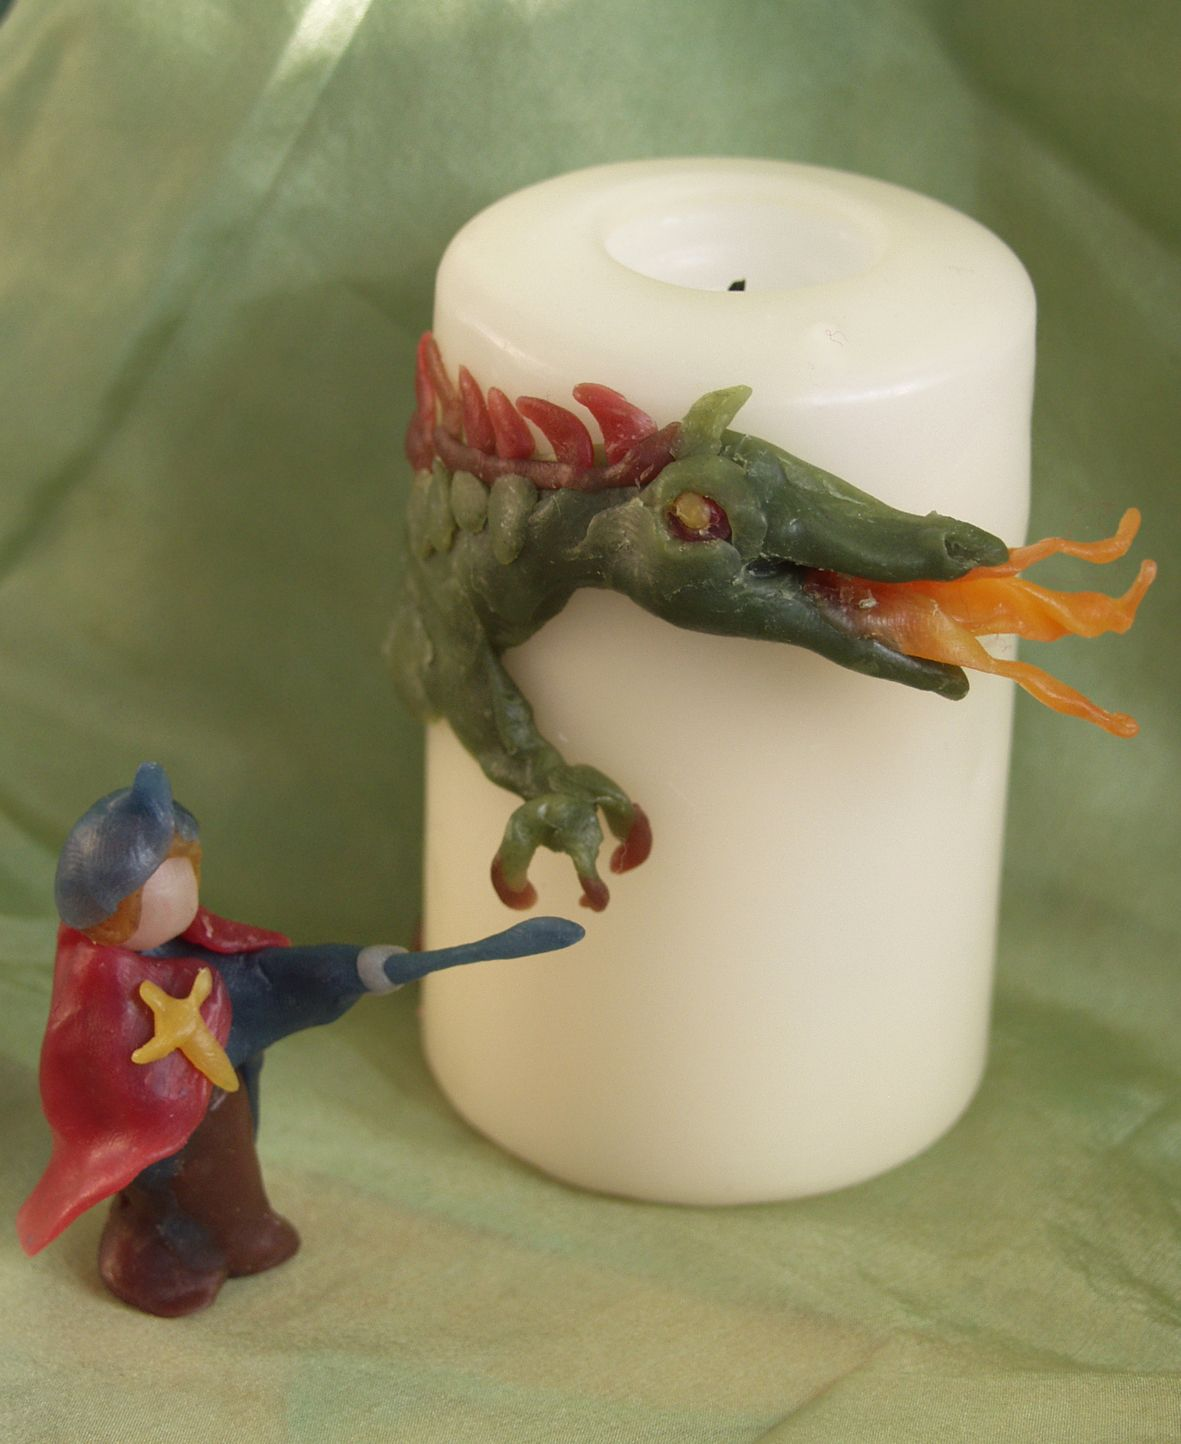 St Michael and Dragon figure and candle decorations made